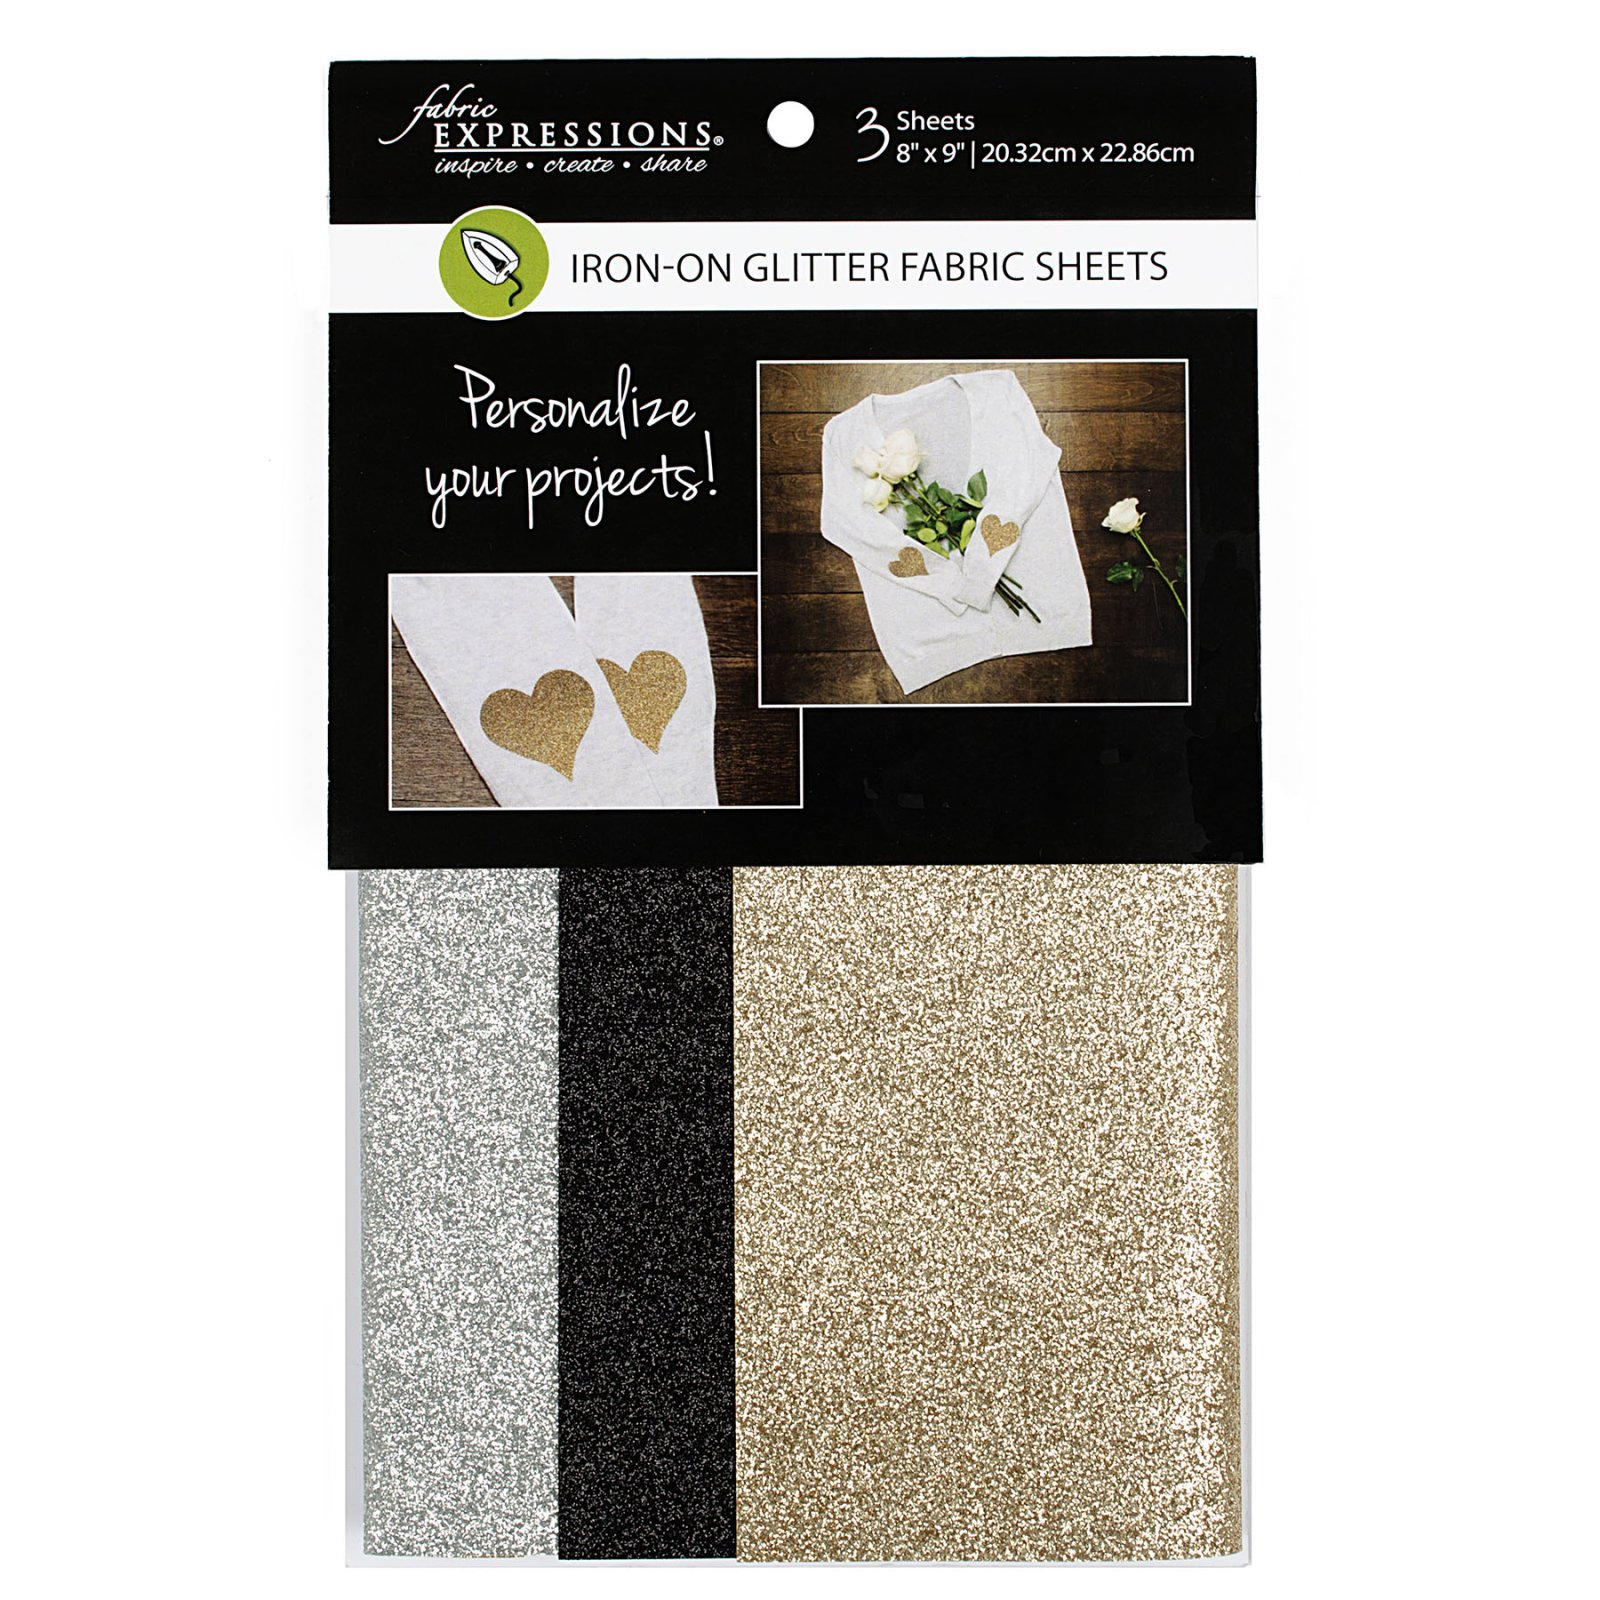 Fabric Expressions<br>6pc Iron-on Fabric Sheets - 8 x 9<br>Glitter - Basic<br>FE-FS-SP2-GLT3PC